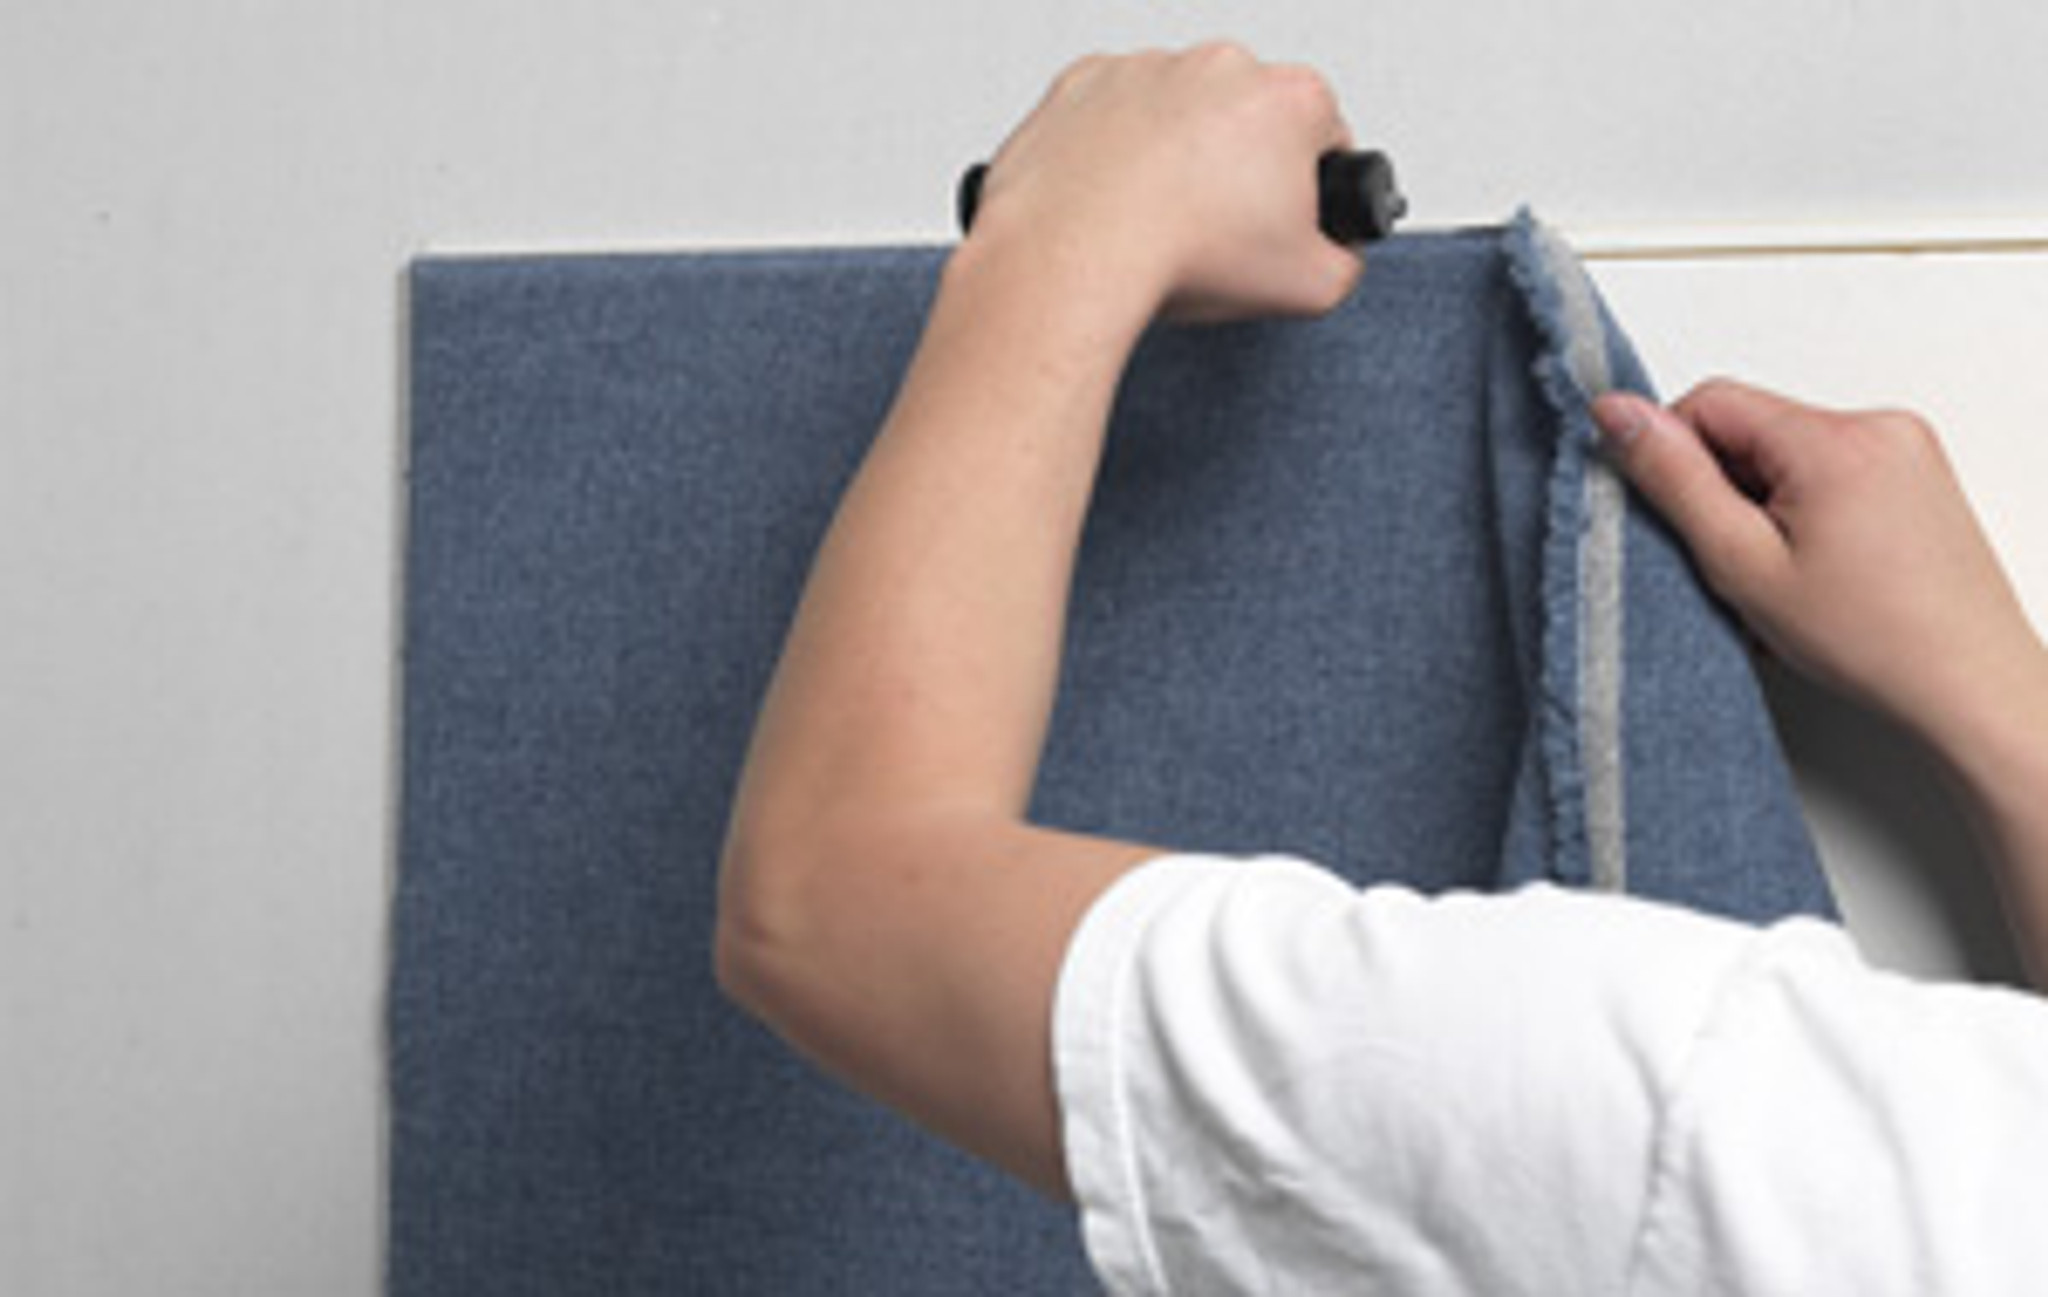 Tech-Wall Inc. Offers Schools, Collages & Universities Acoustical Products At Discount Prices..